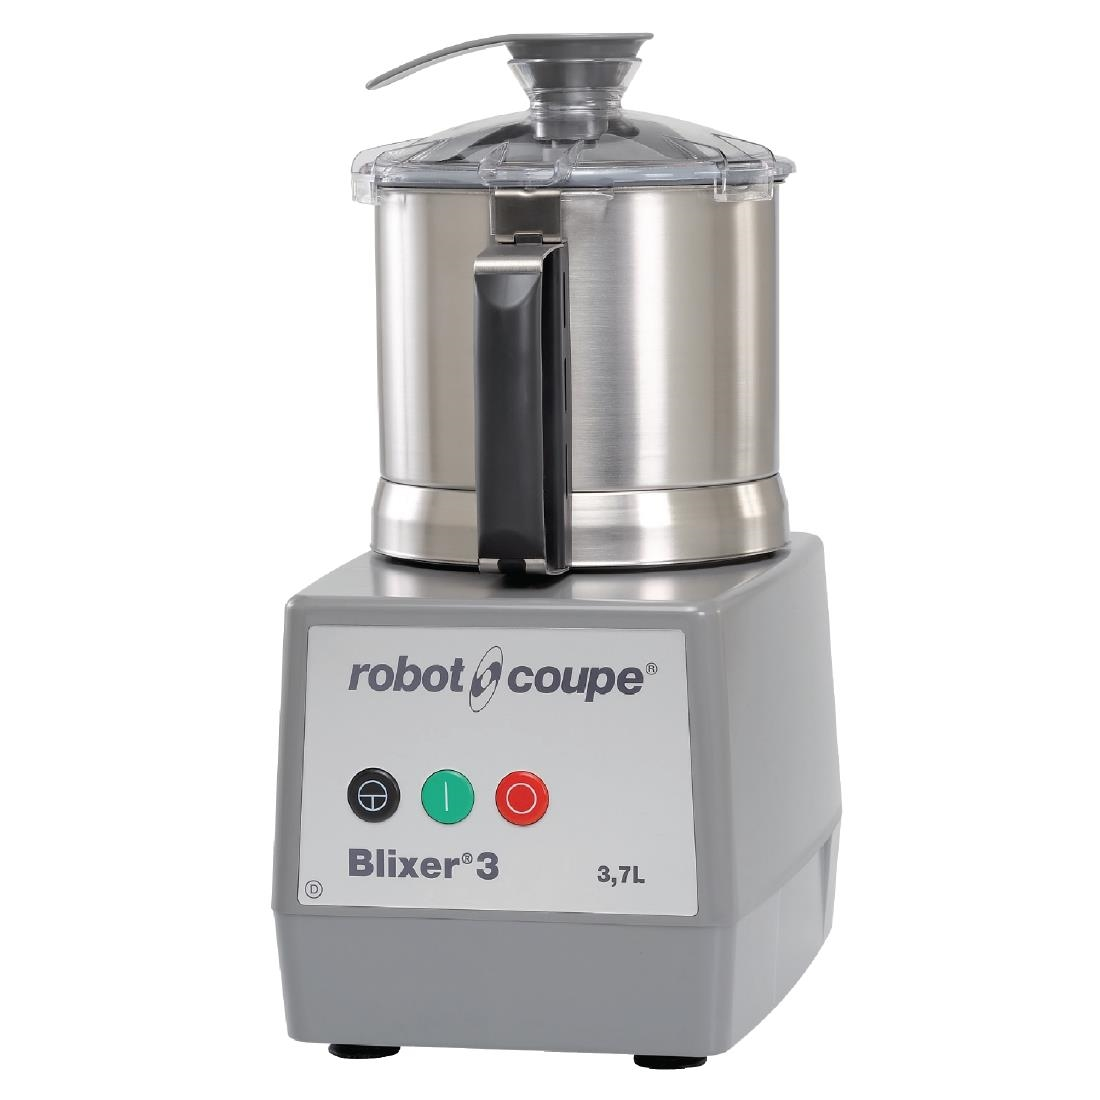 Image of Robot Coupe Blixer 3